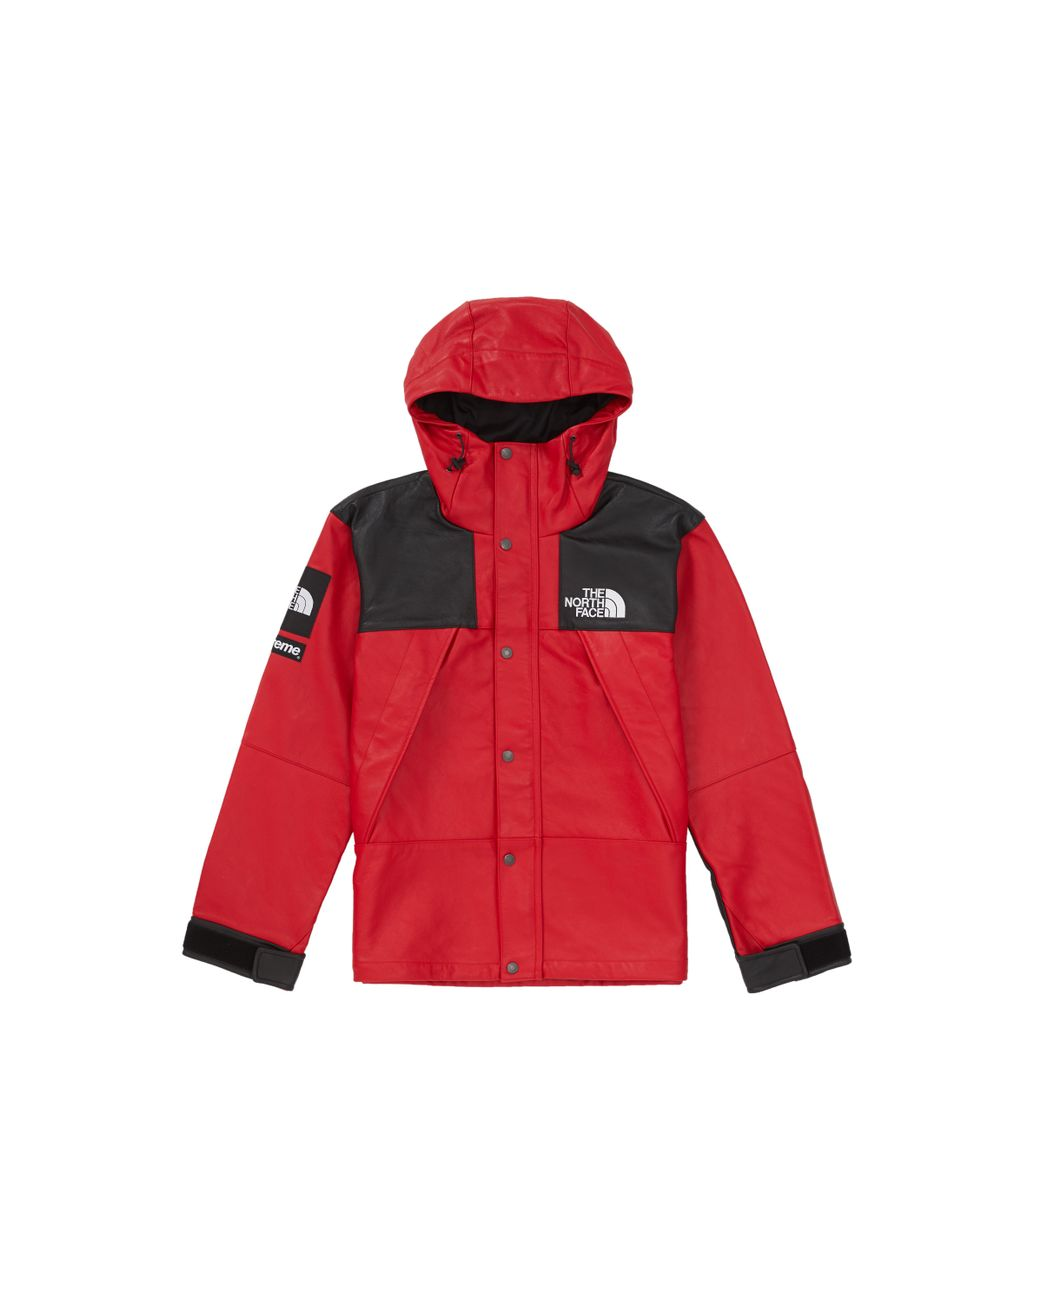 b60ecdf3 Supreme The North Face Leather Mountain Parka Red in Red for Men - Lyst